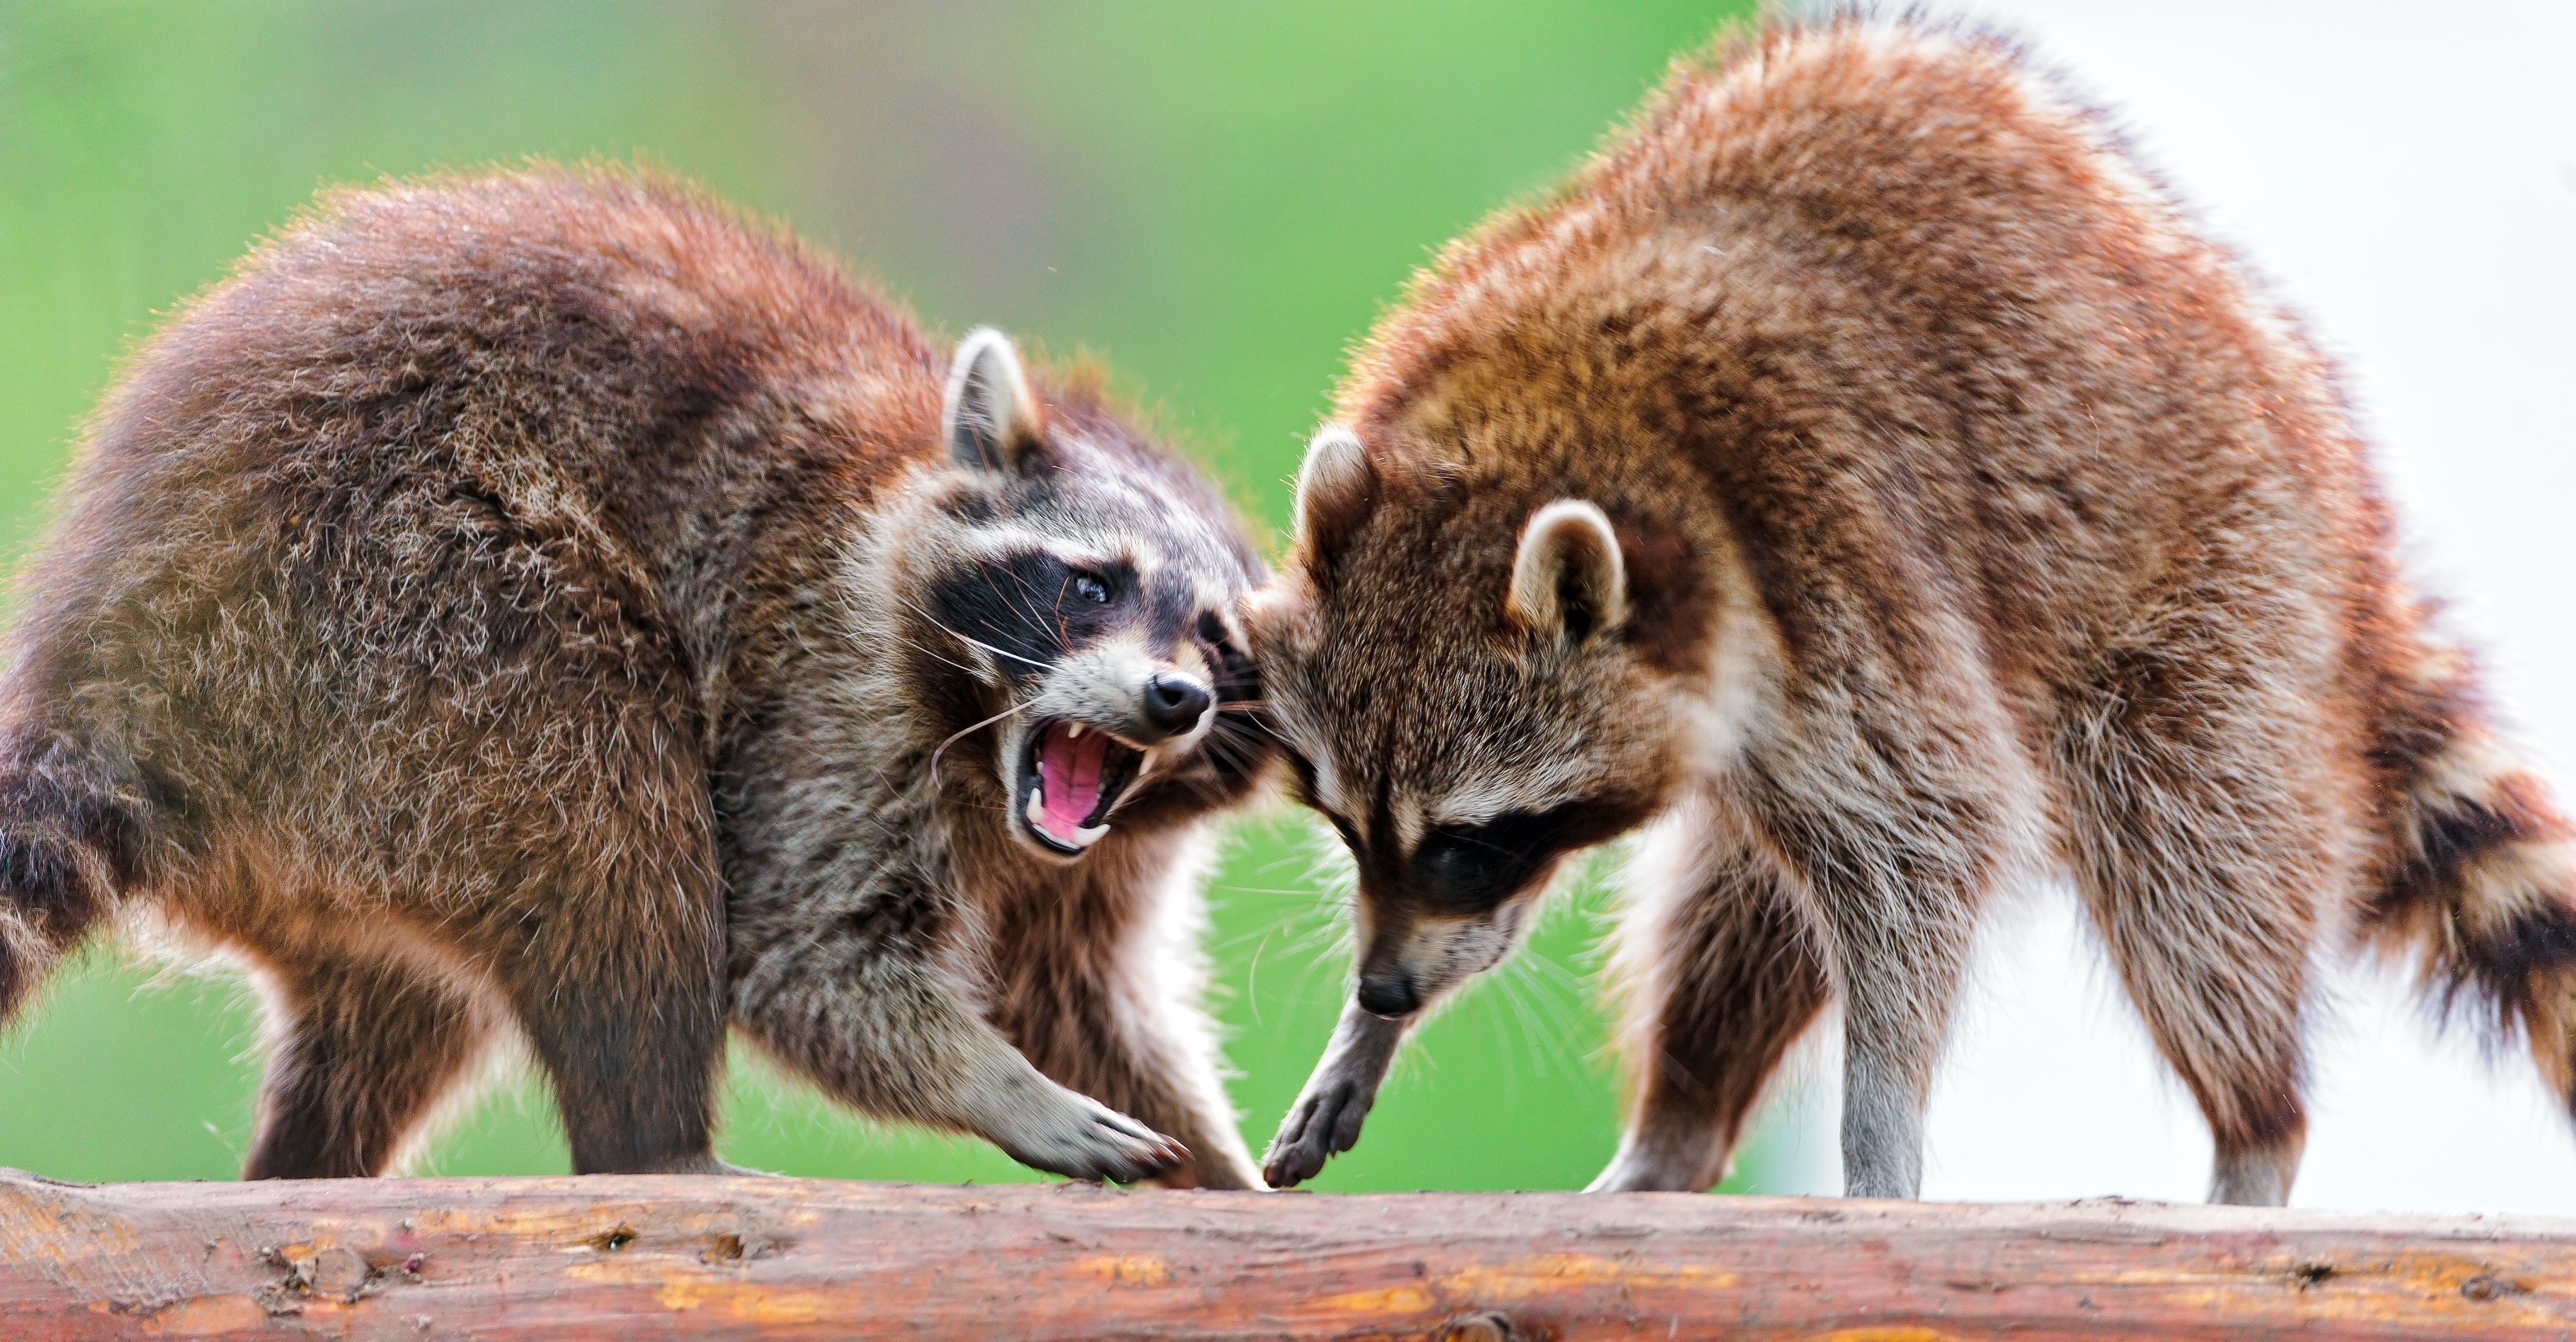 101496 download wallpaper Animals, Raccoons, Couple, Pair, Fight, Raccoon screensavers and pictures for free